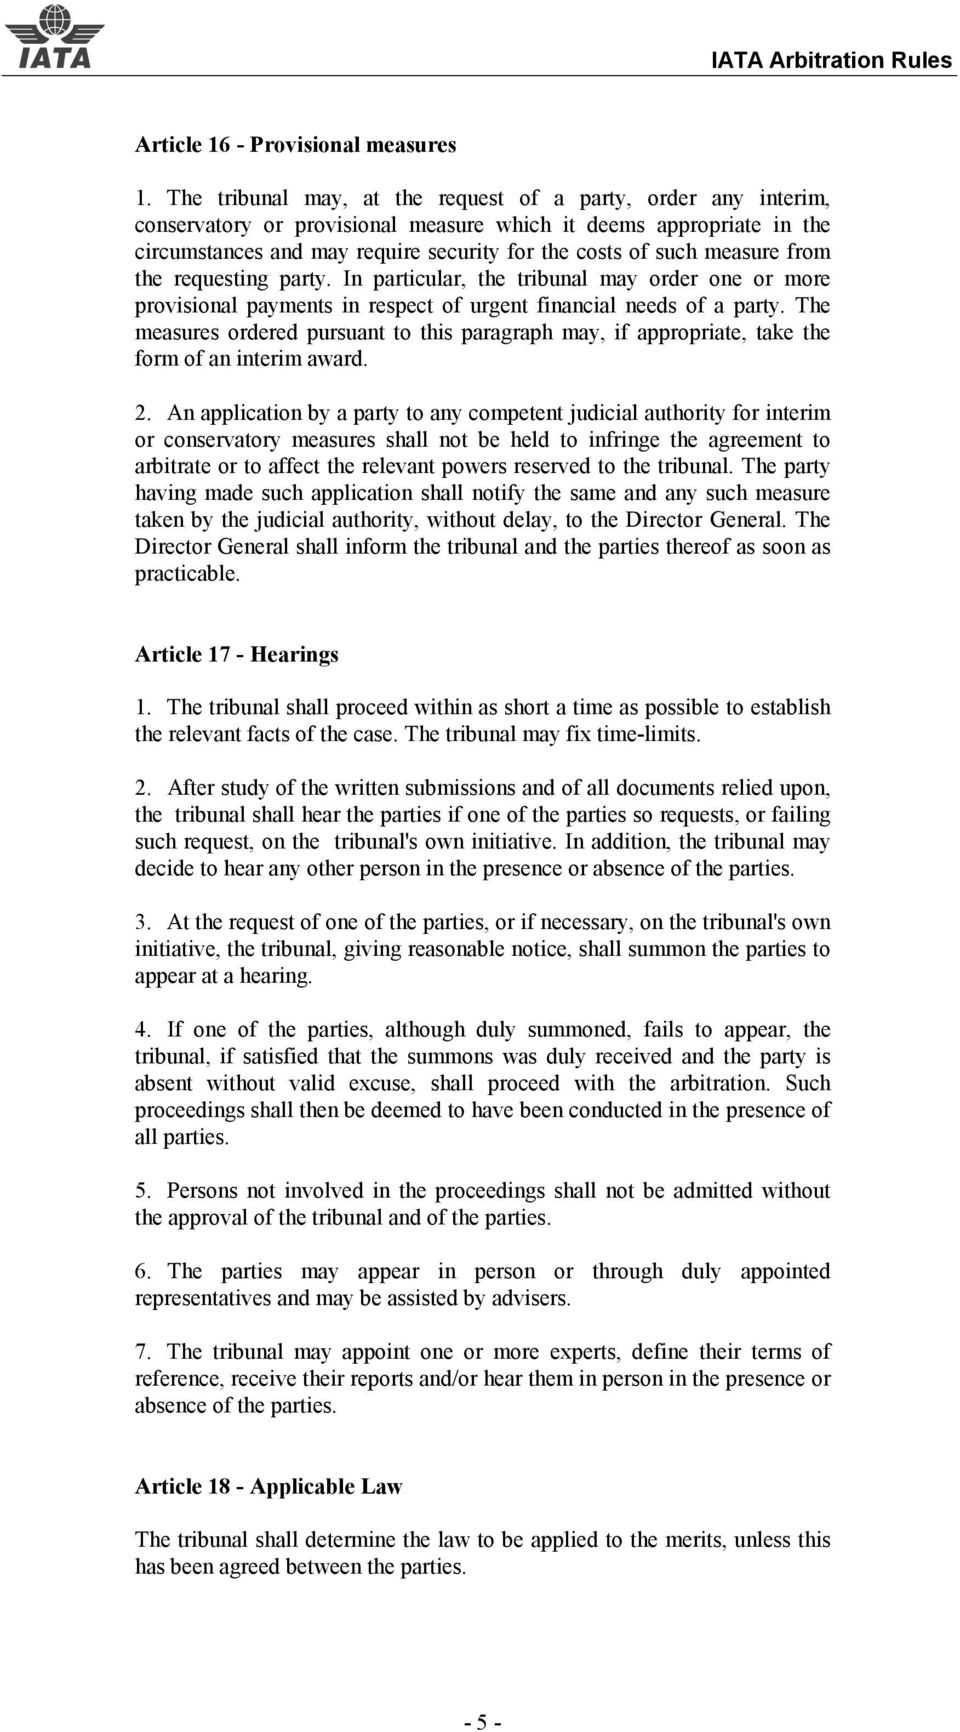 measure from the requesting party. In particular, the tribunal may order one or more provisional payments in respect of urgent financial needs of a party.